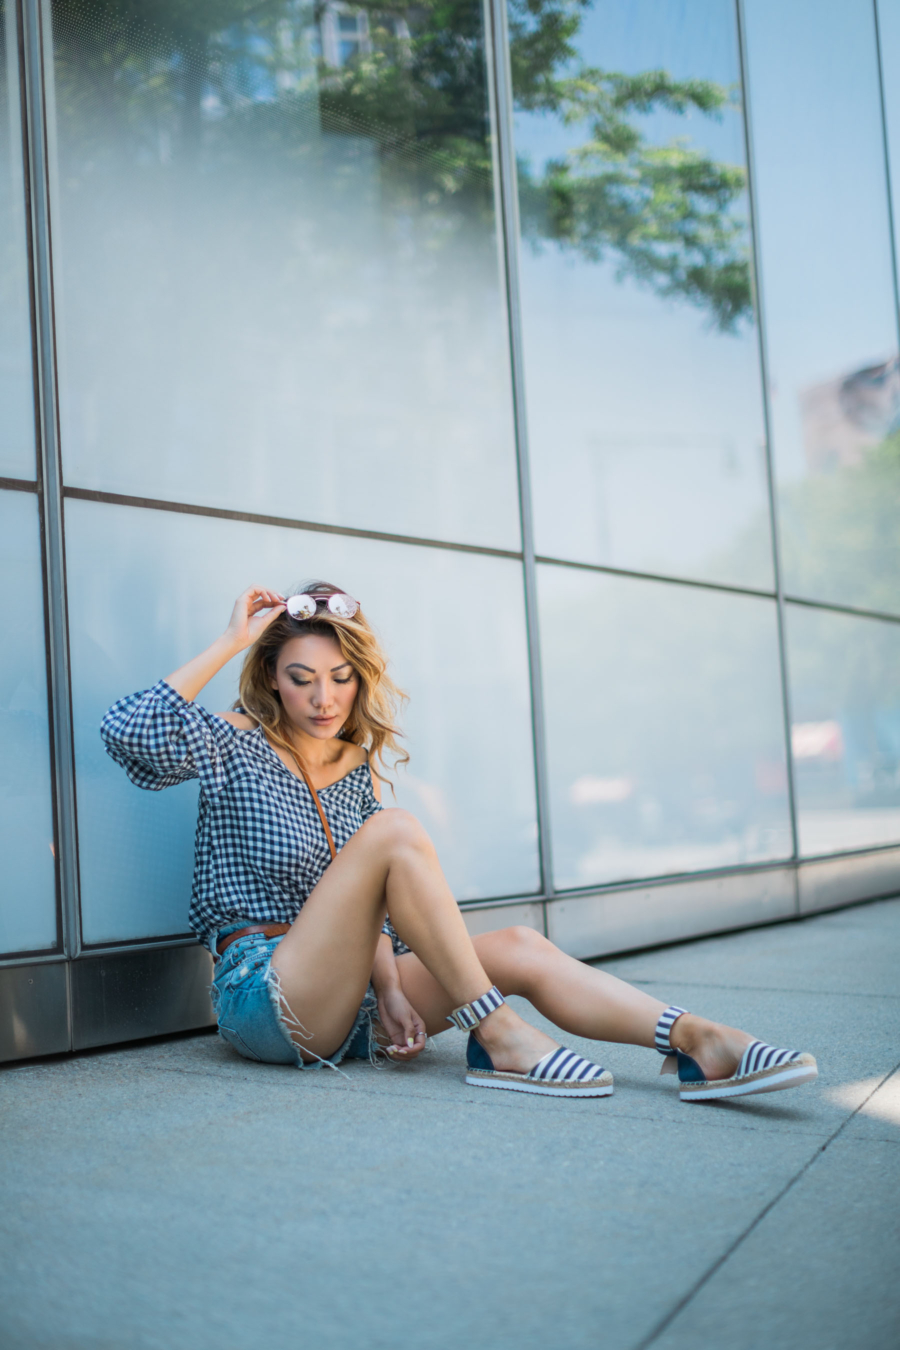 Black and white gingham and stripes - 5 Updated Gingham Trends You'll Love For Summer // NotJessFashion.com